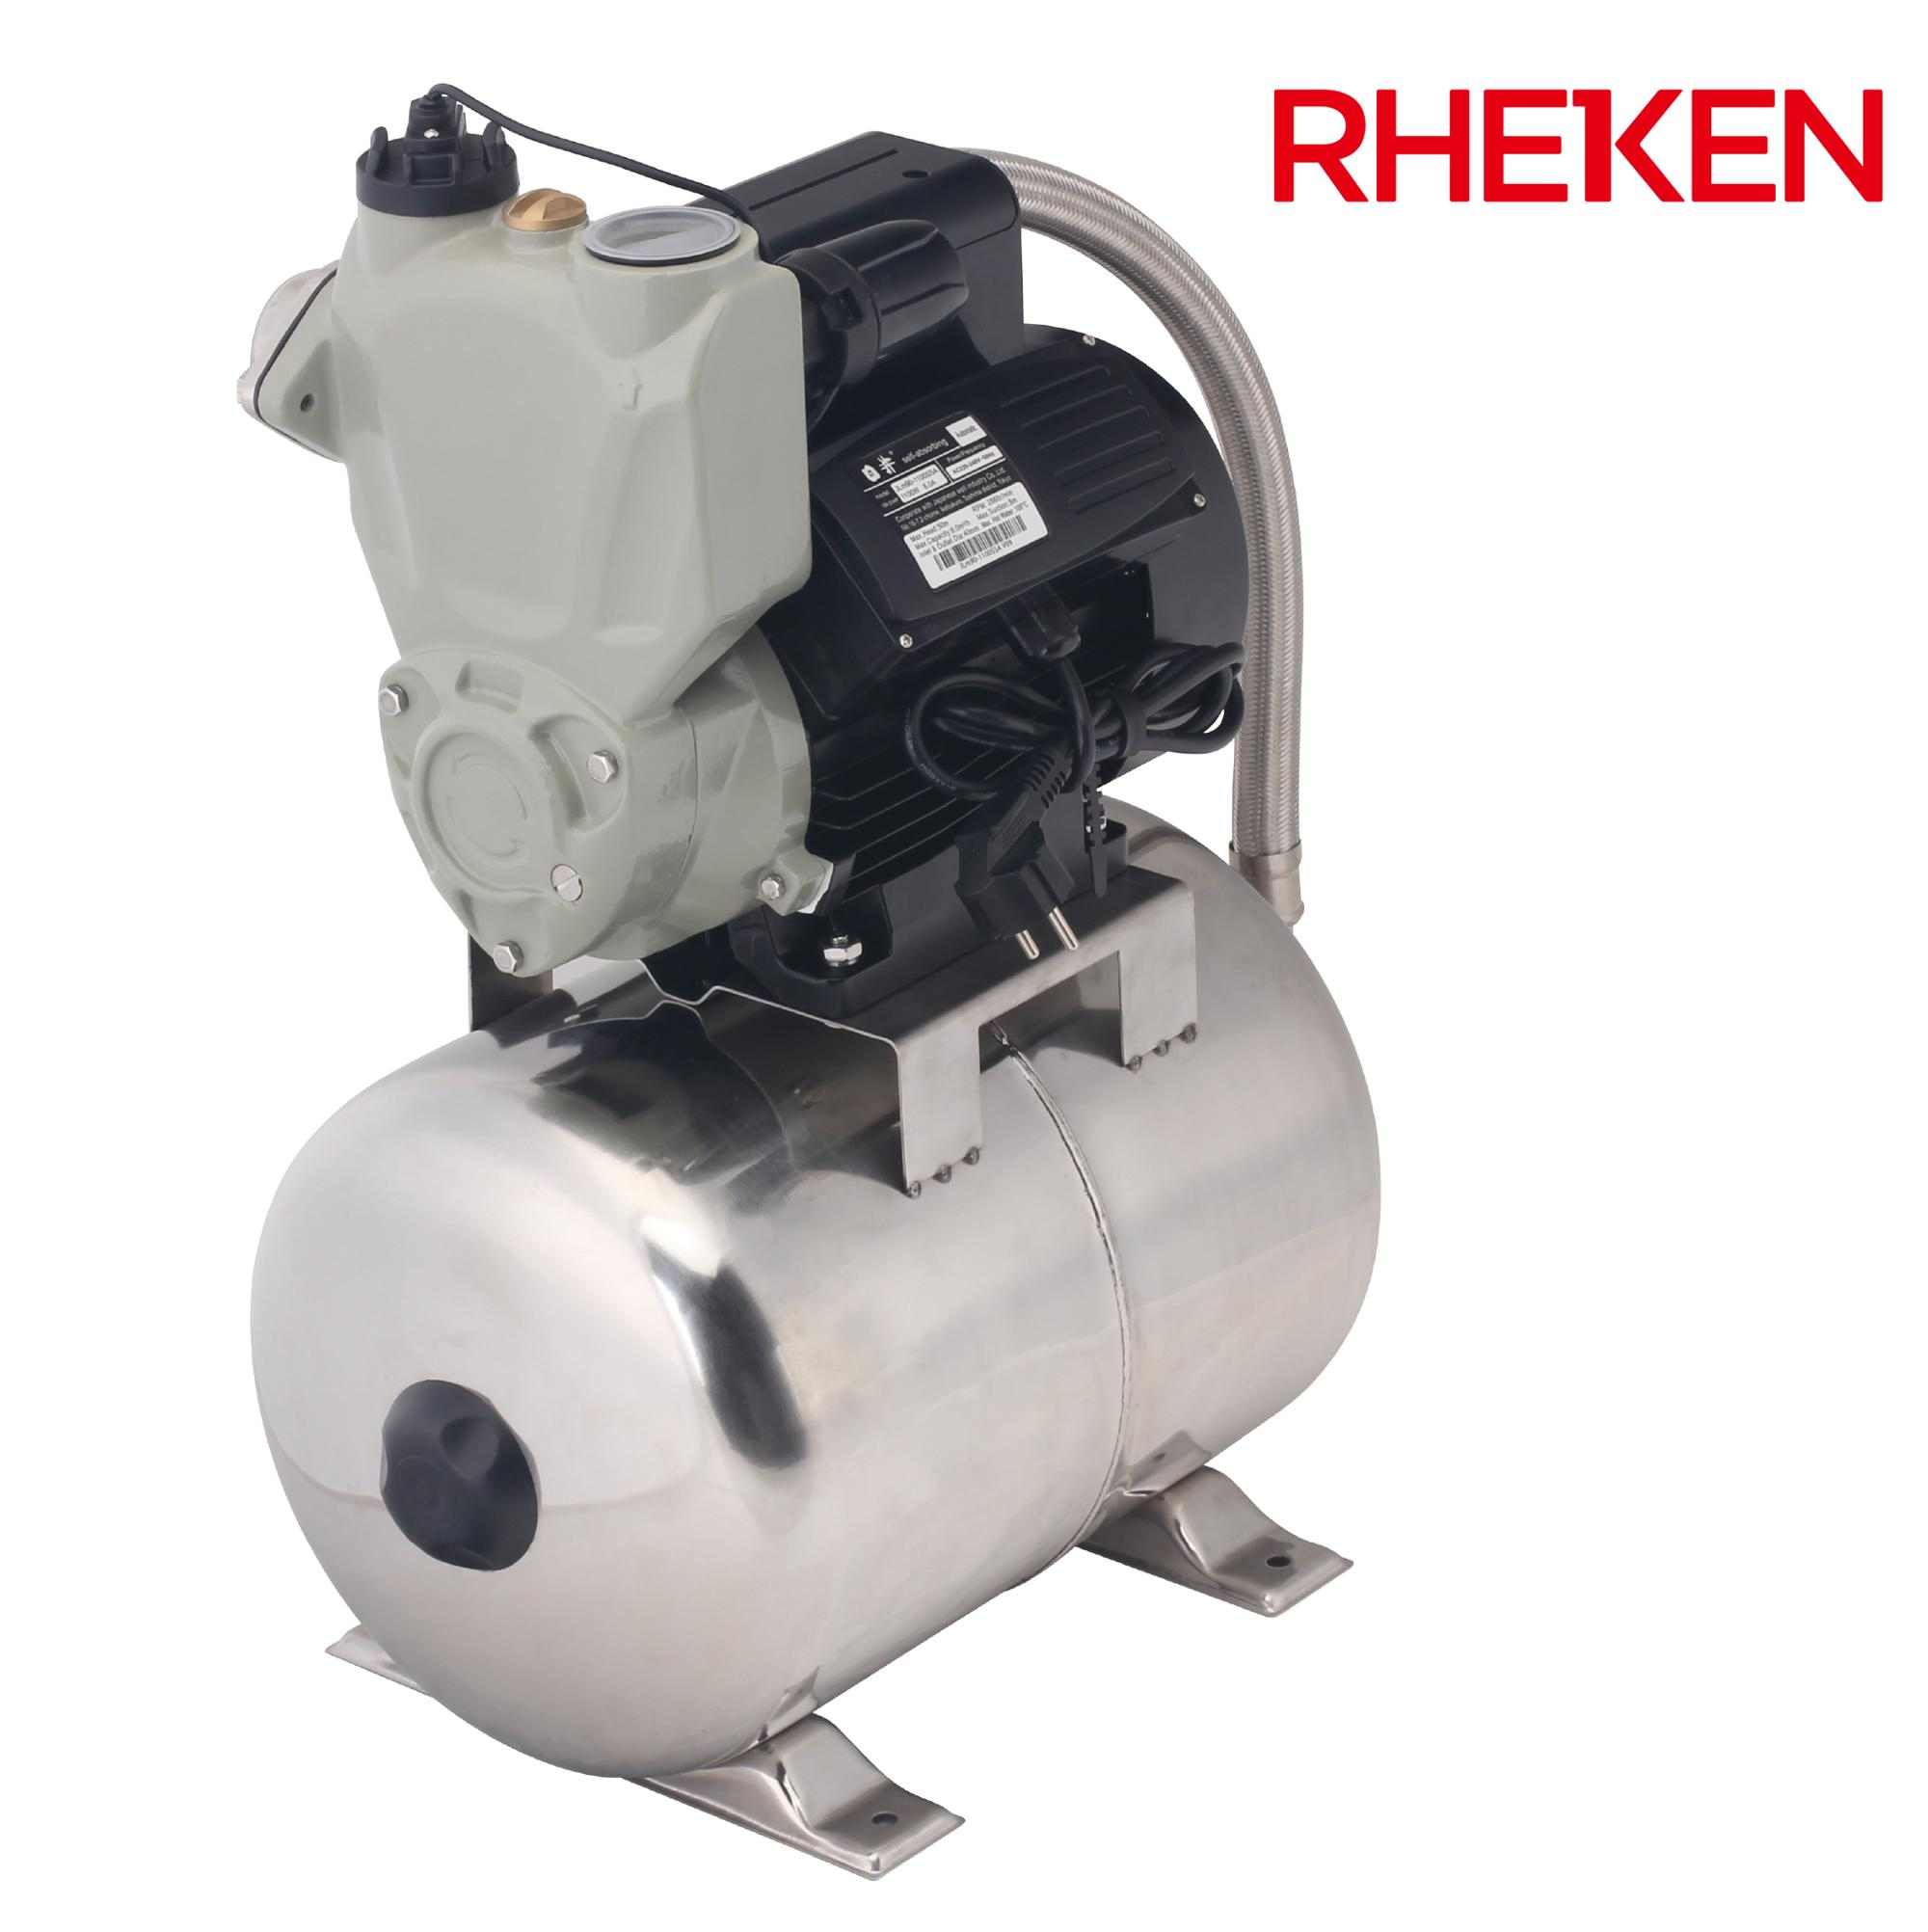 Electric Power Water Booster Machine Household Garden Irrigation Use High Pressure Low Noise Self-priming Jet Pump